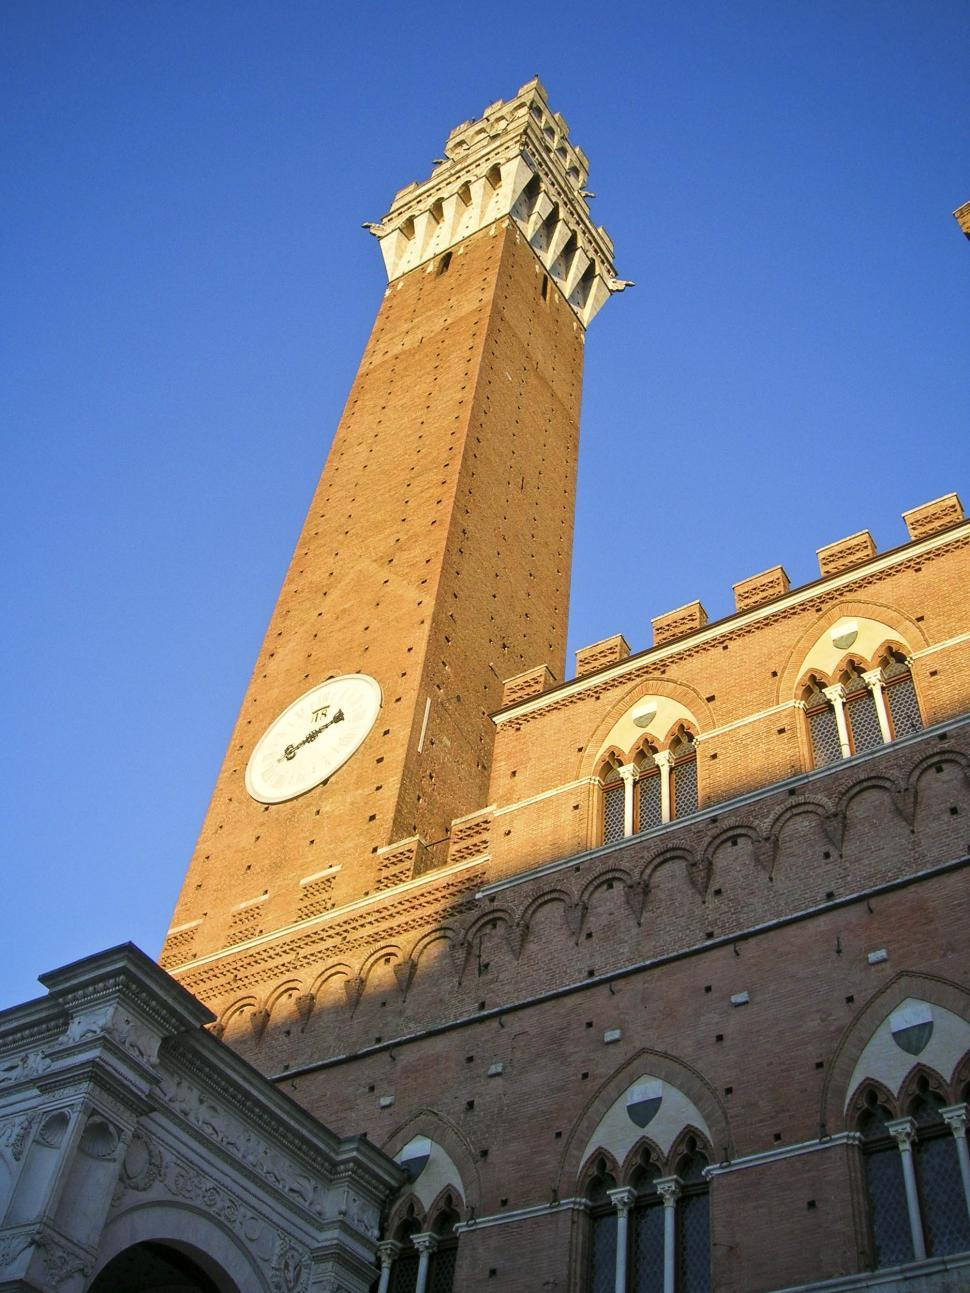 Download Free Stock HD Photo of Siena italy clock Online